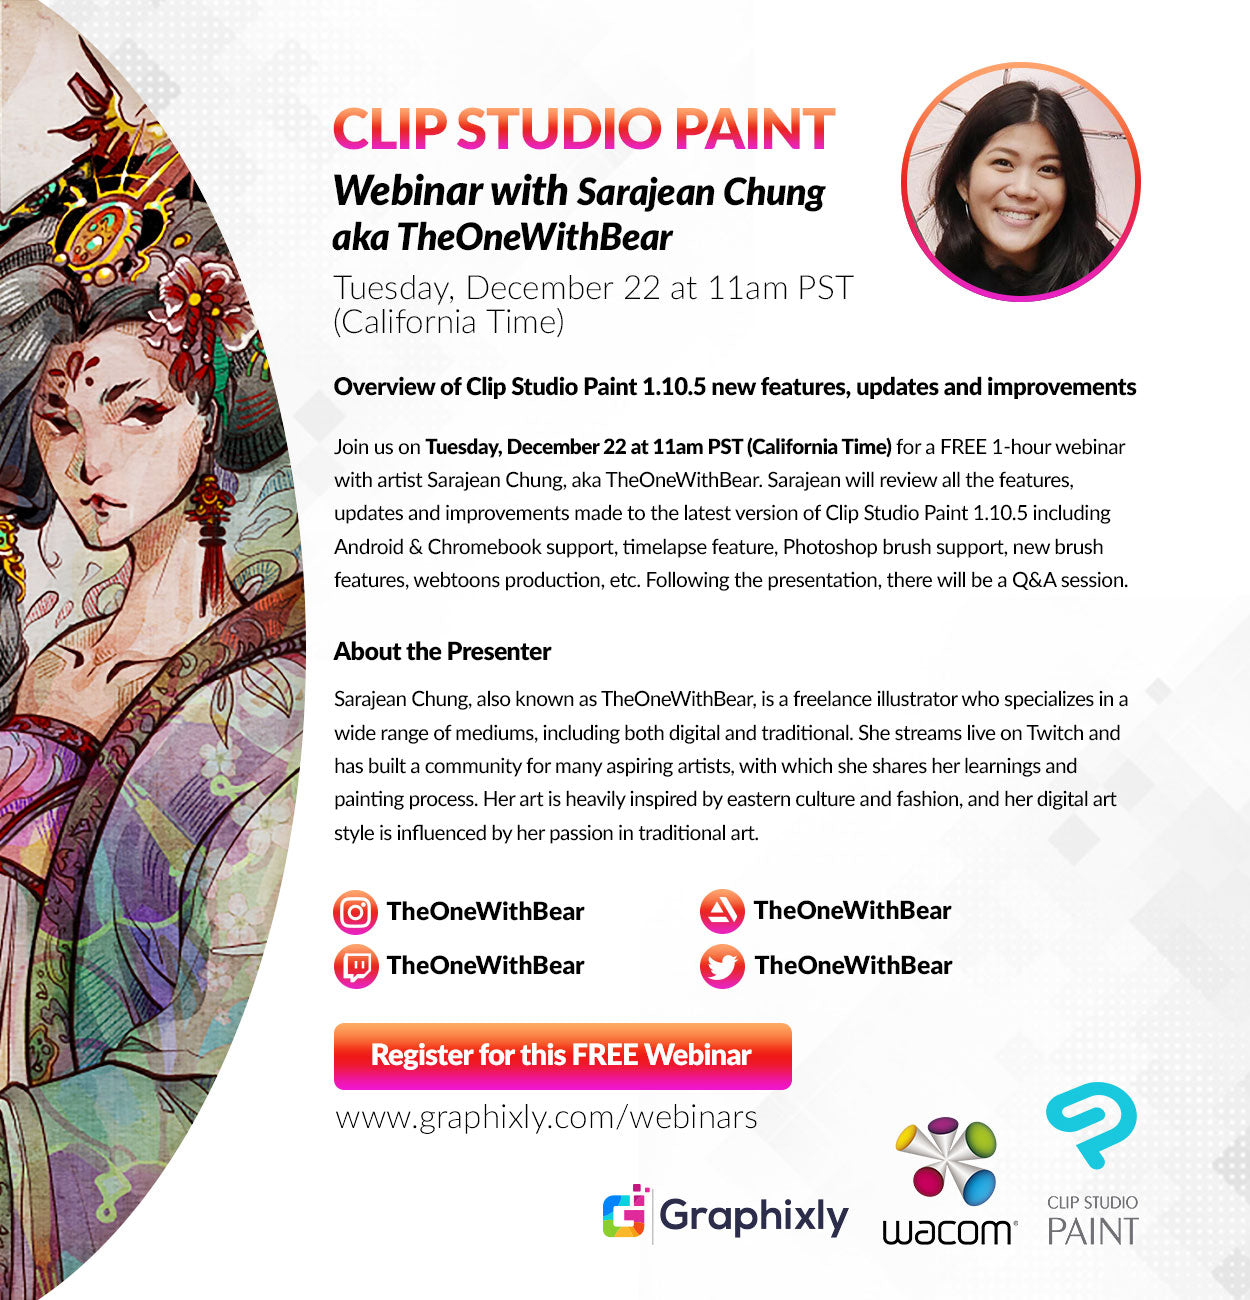 Webinar – Overview of Clip Studio Paint 1.10.5 new features, updates and improvements with Sarajean Chung